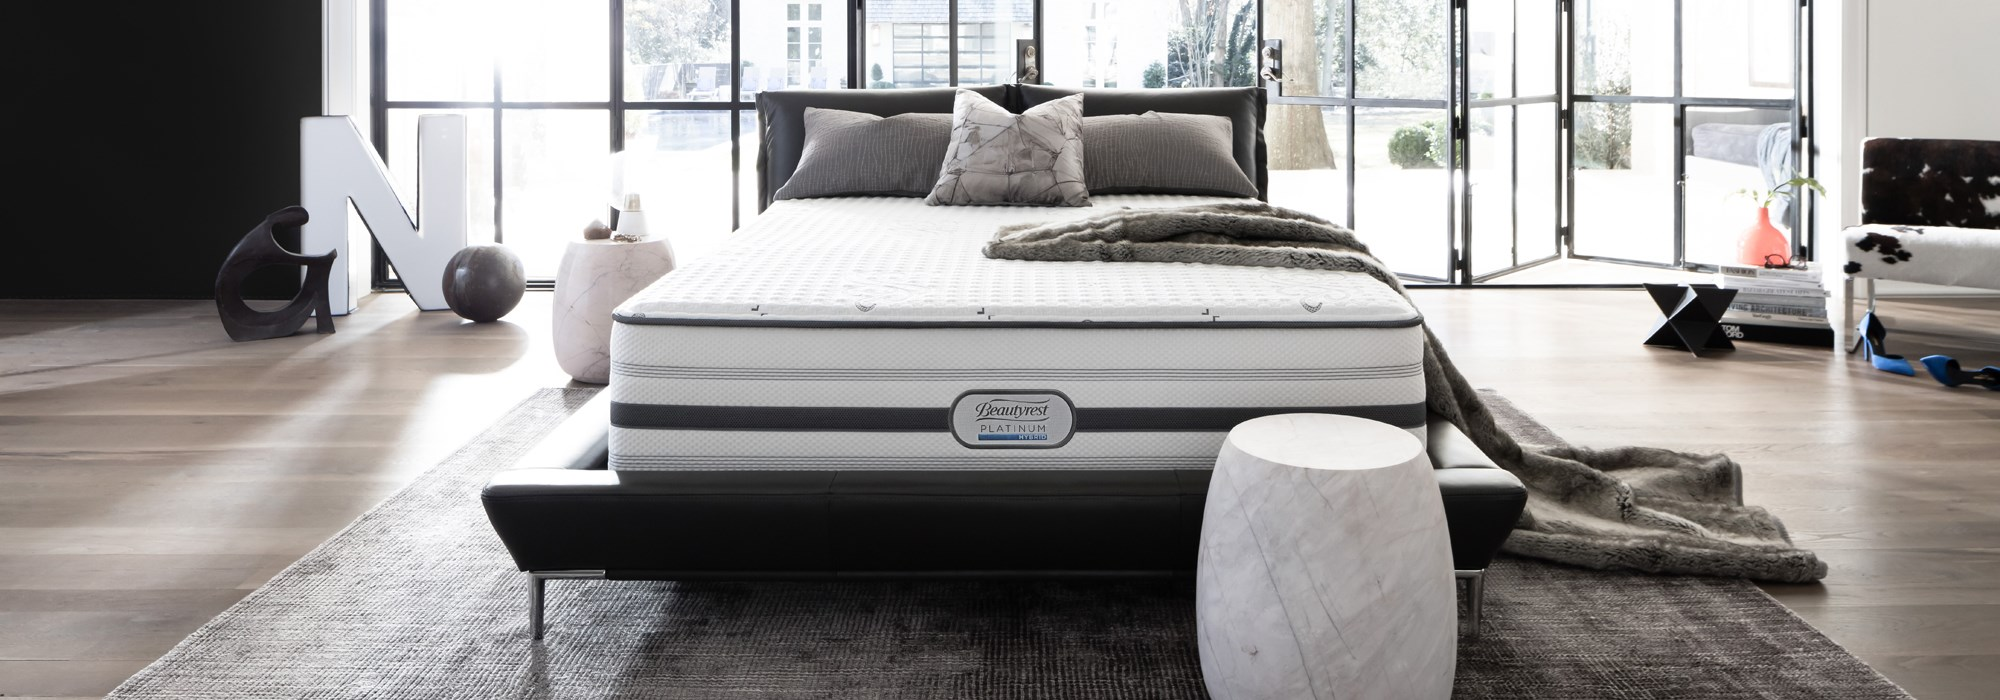 Beautyrest Mattresses At Conlinu0027s Furniture